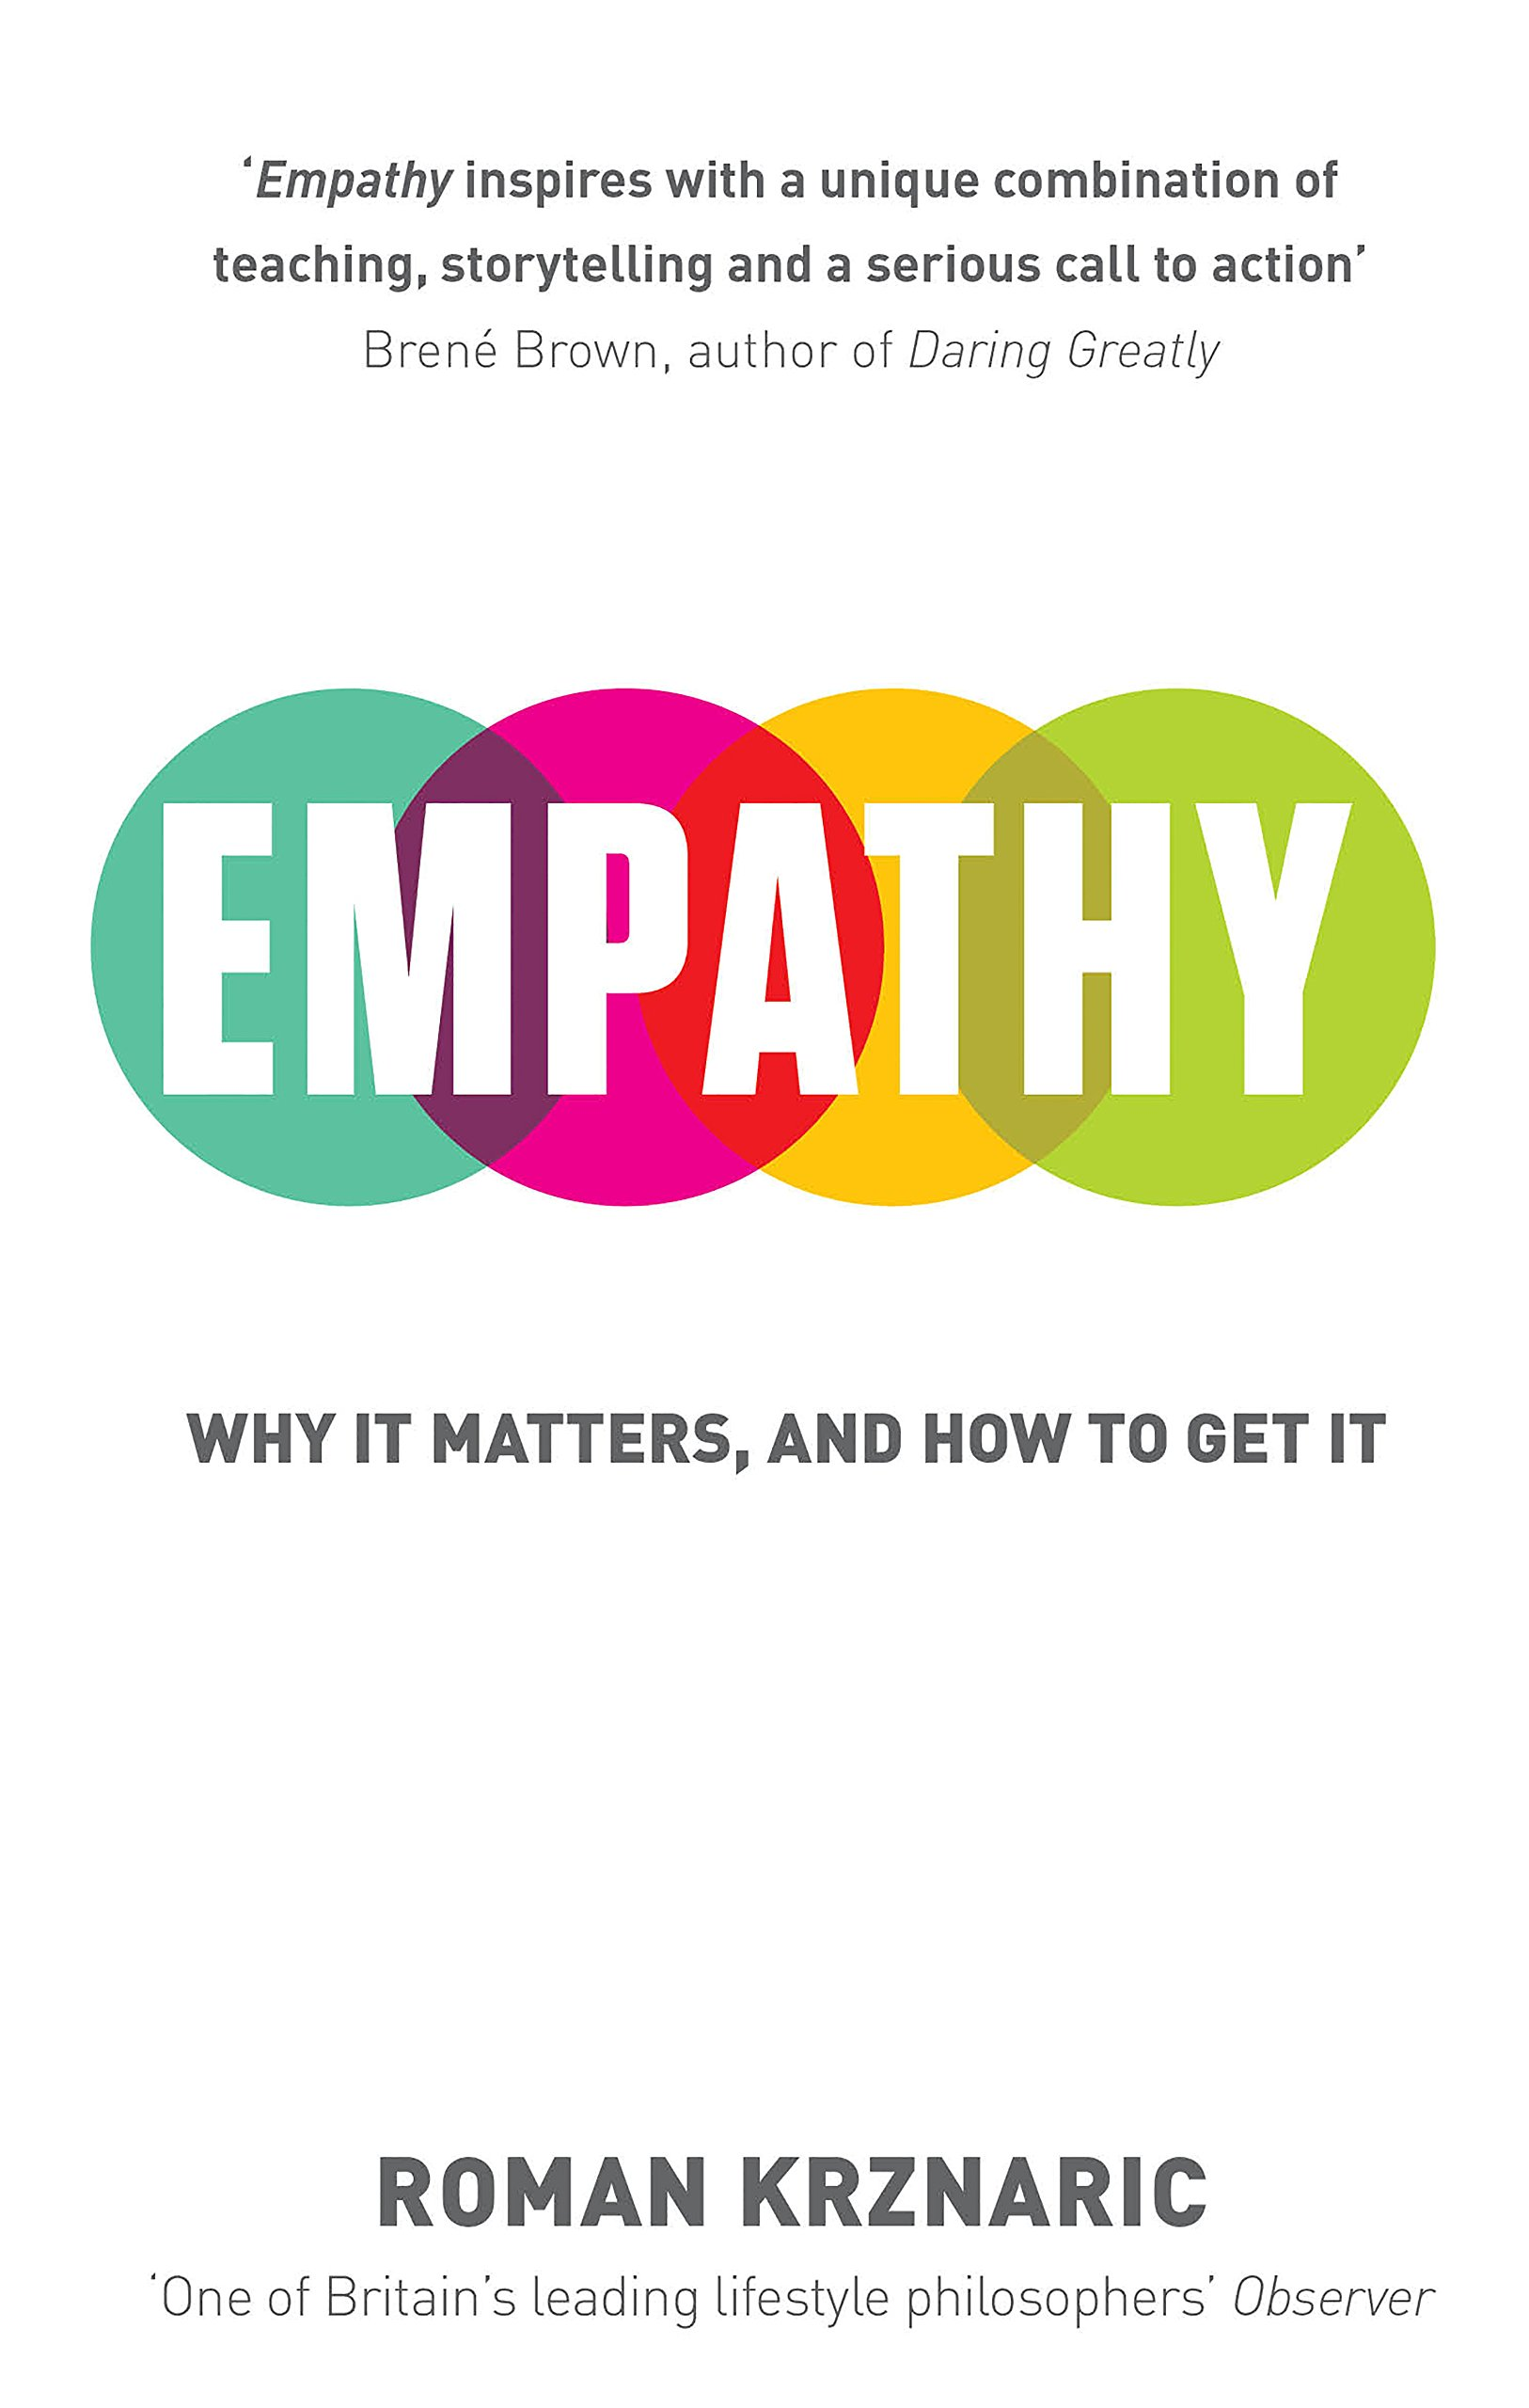 EMPATHY by Roman Krznaric